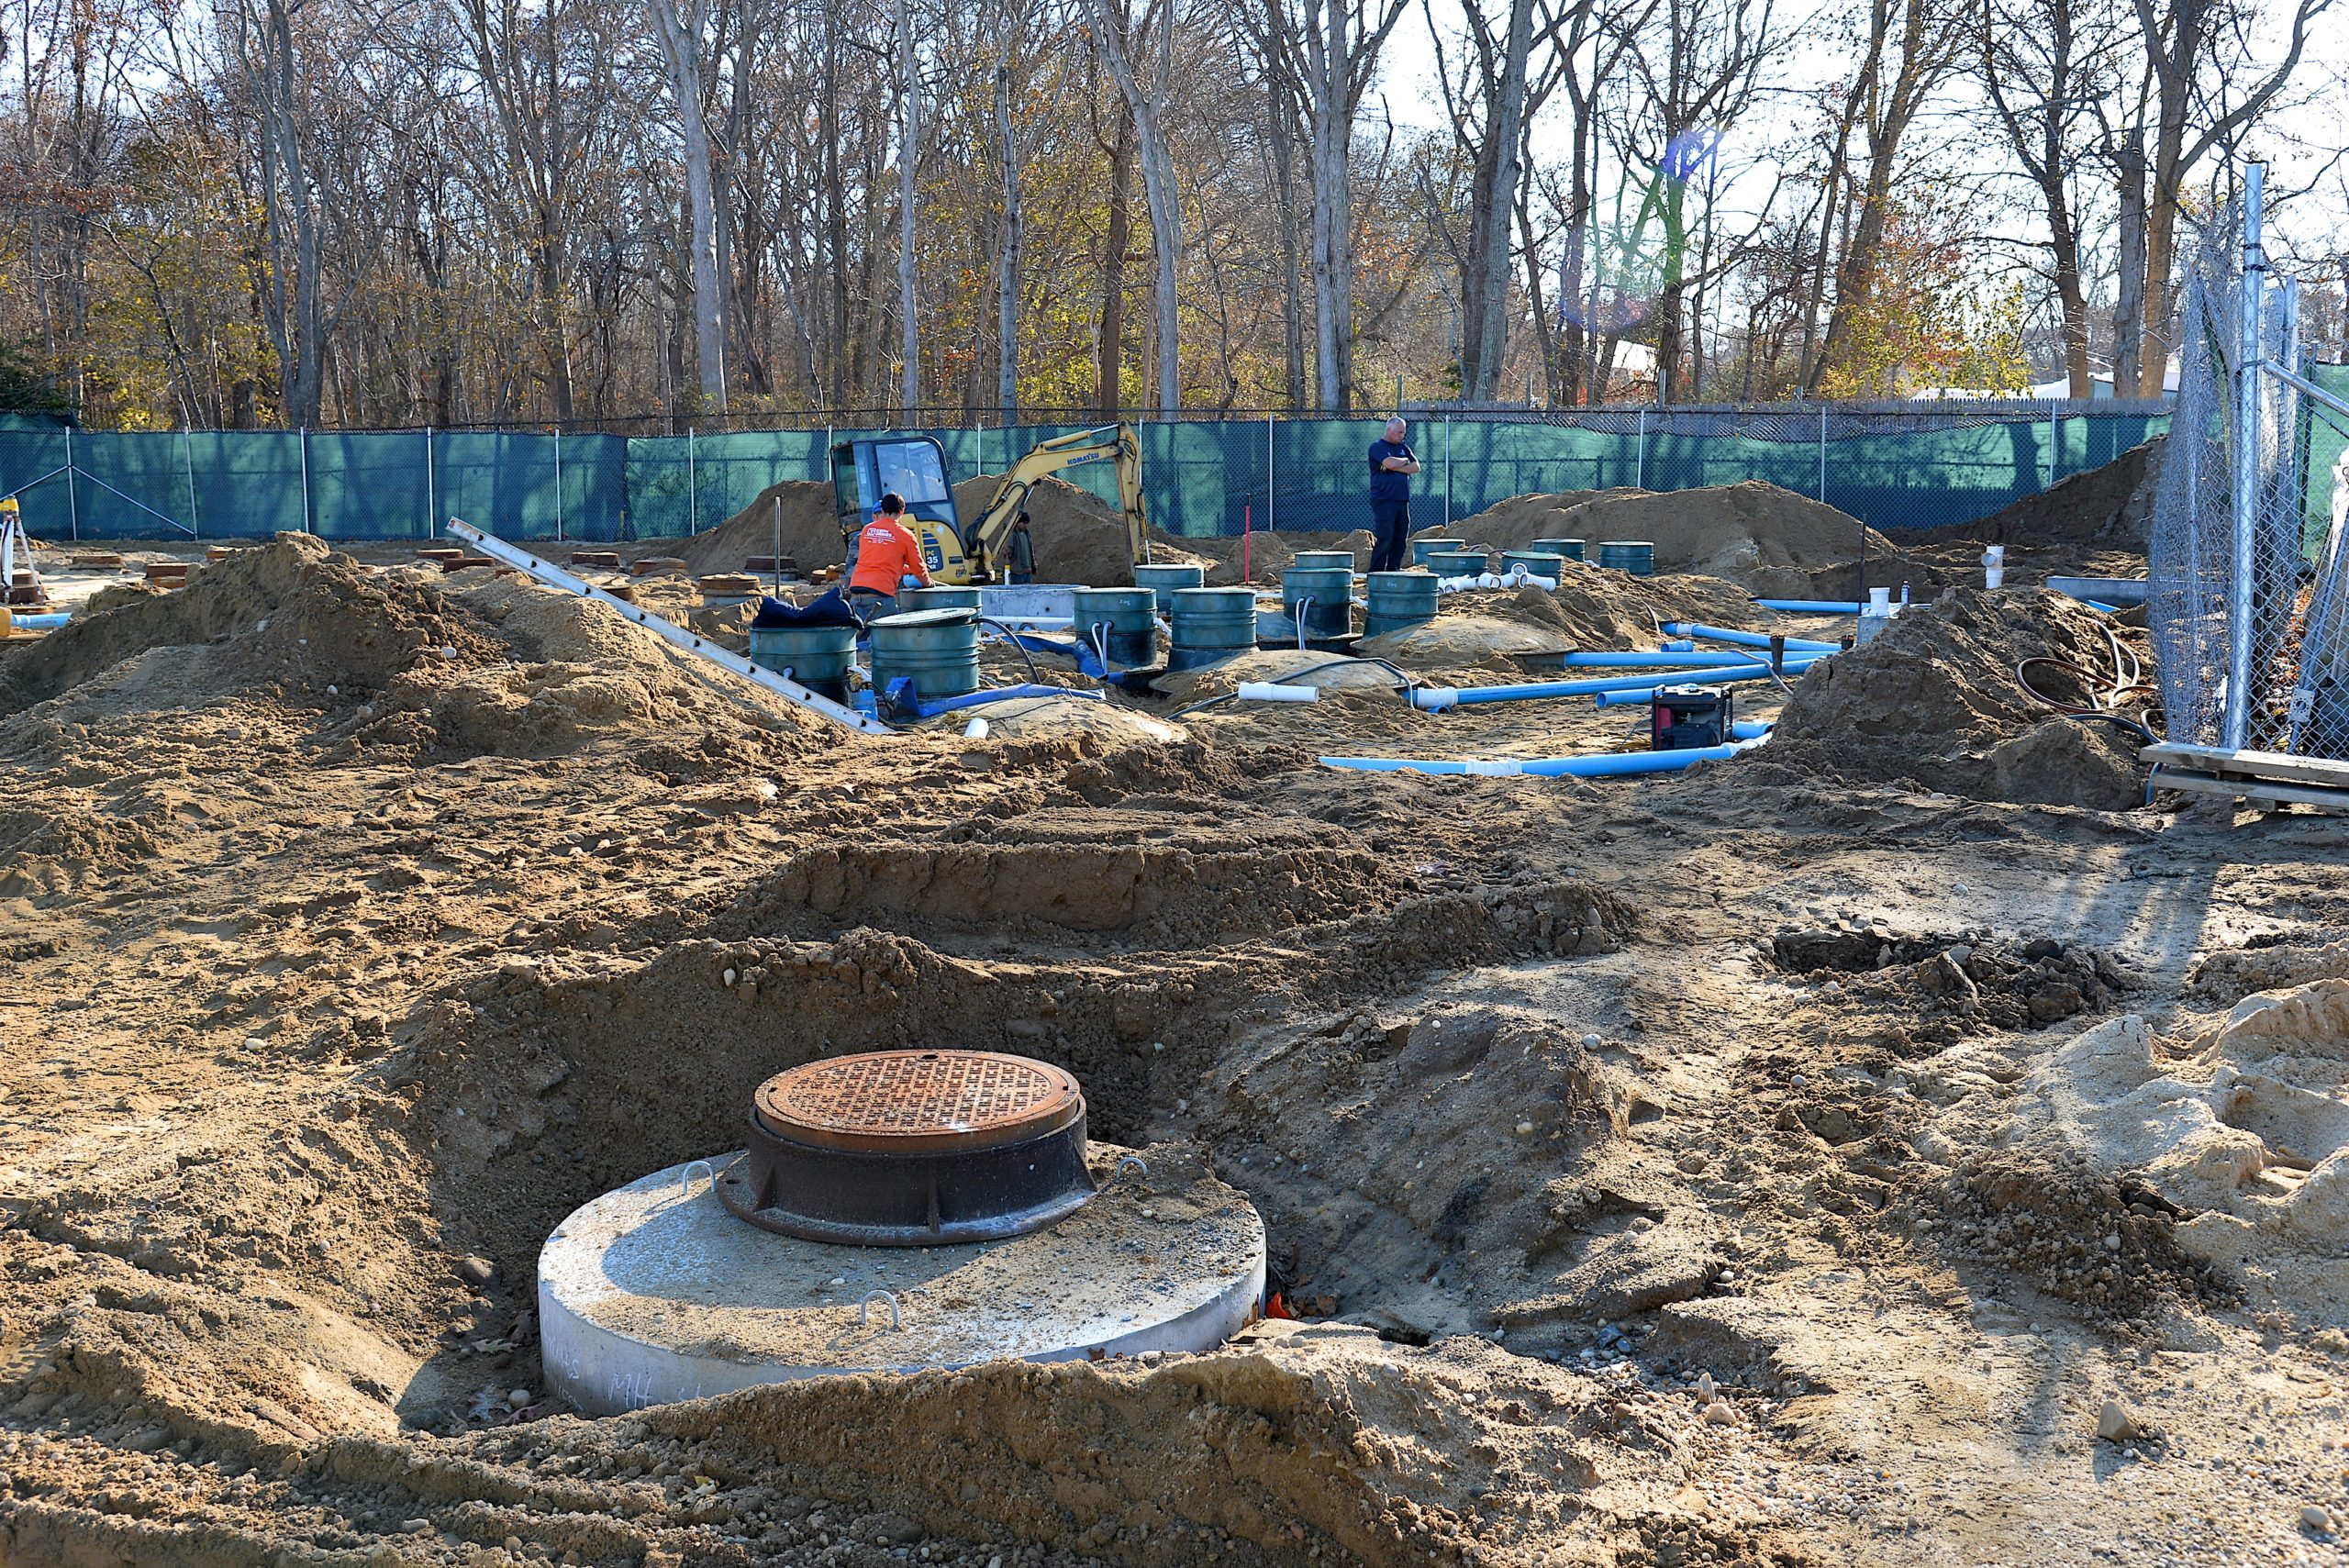 The Springs School is in the midst of a $1.6 million replacement of its septic system. East Hampton Town approved a $227,000 grant from the town's Community Preservation Fund to cover some of the costs.